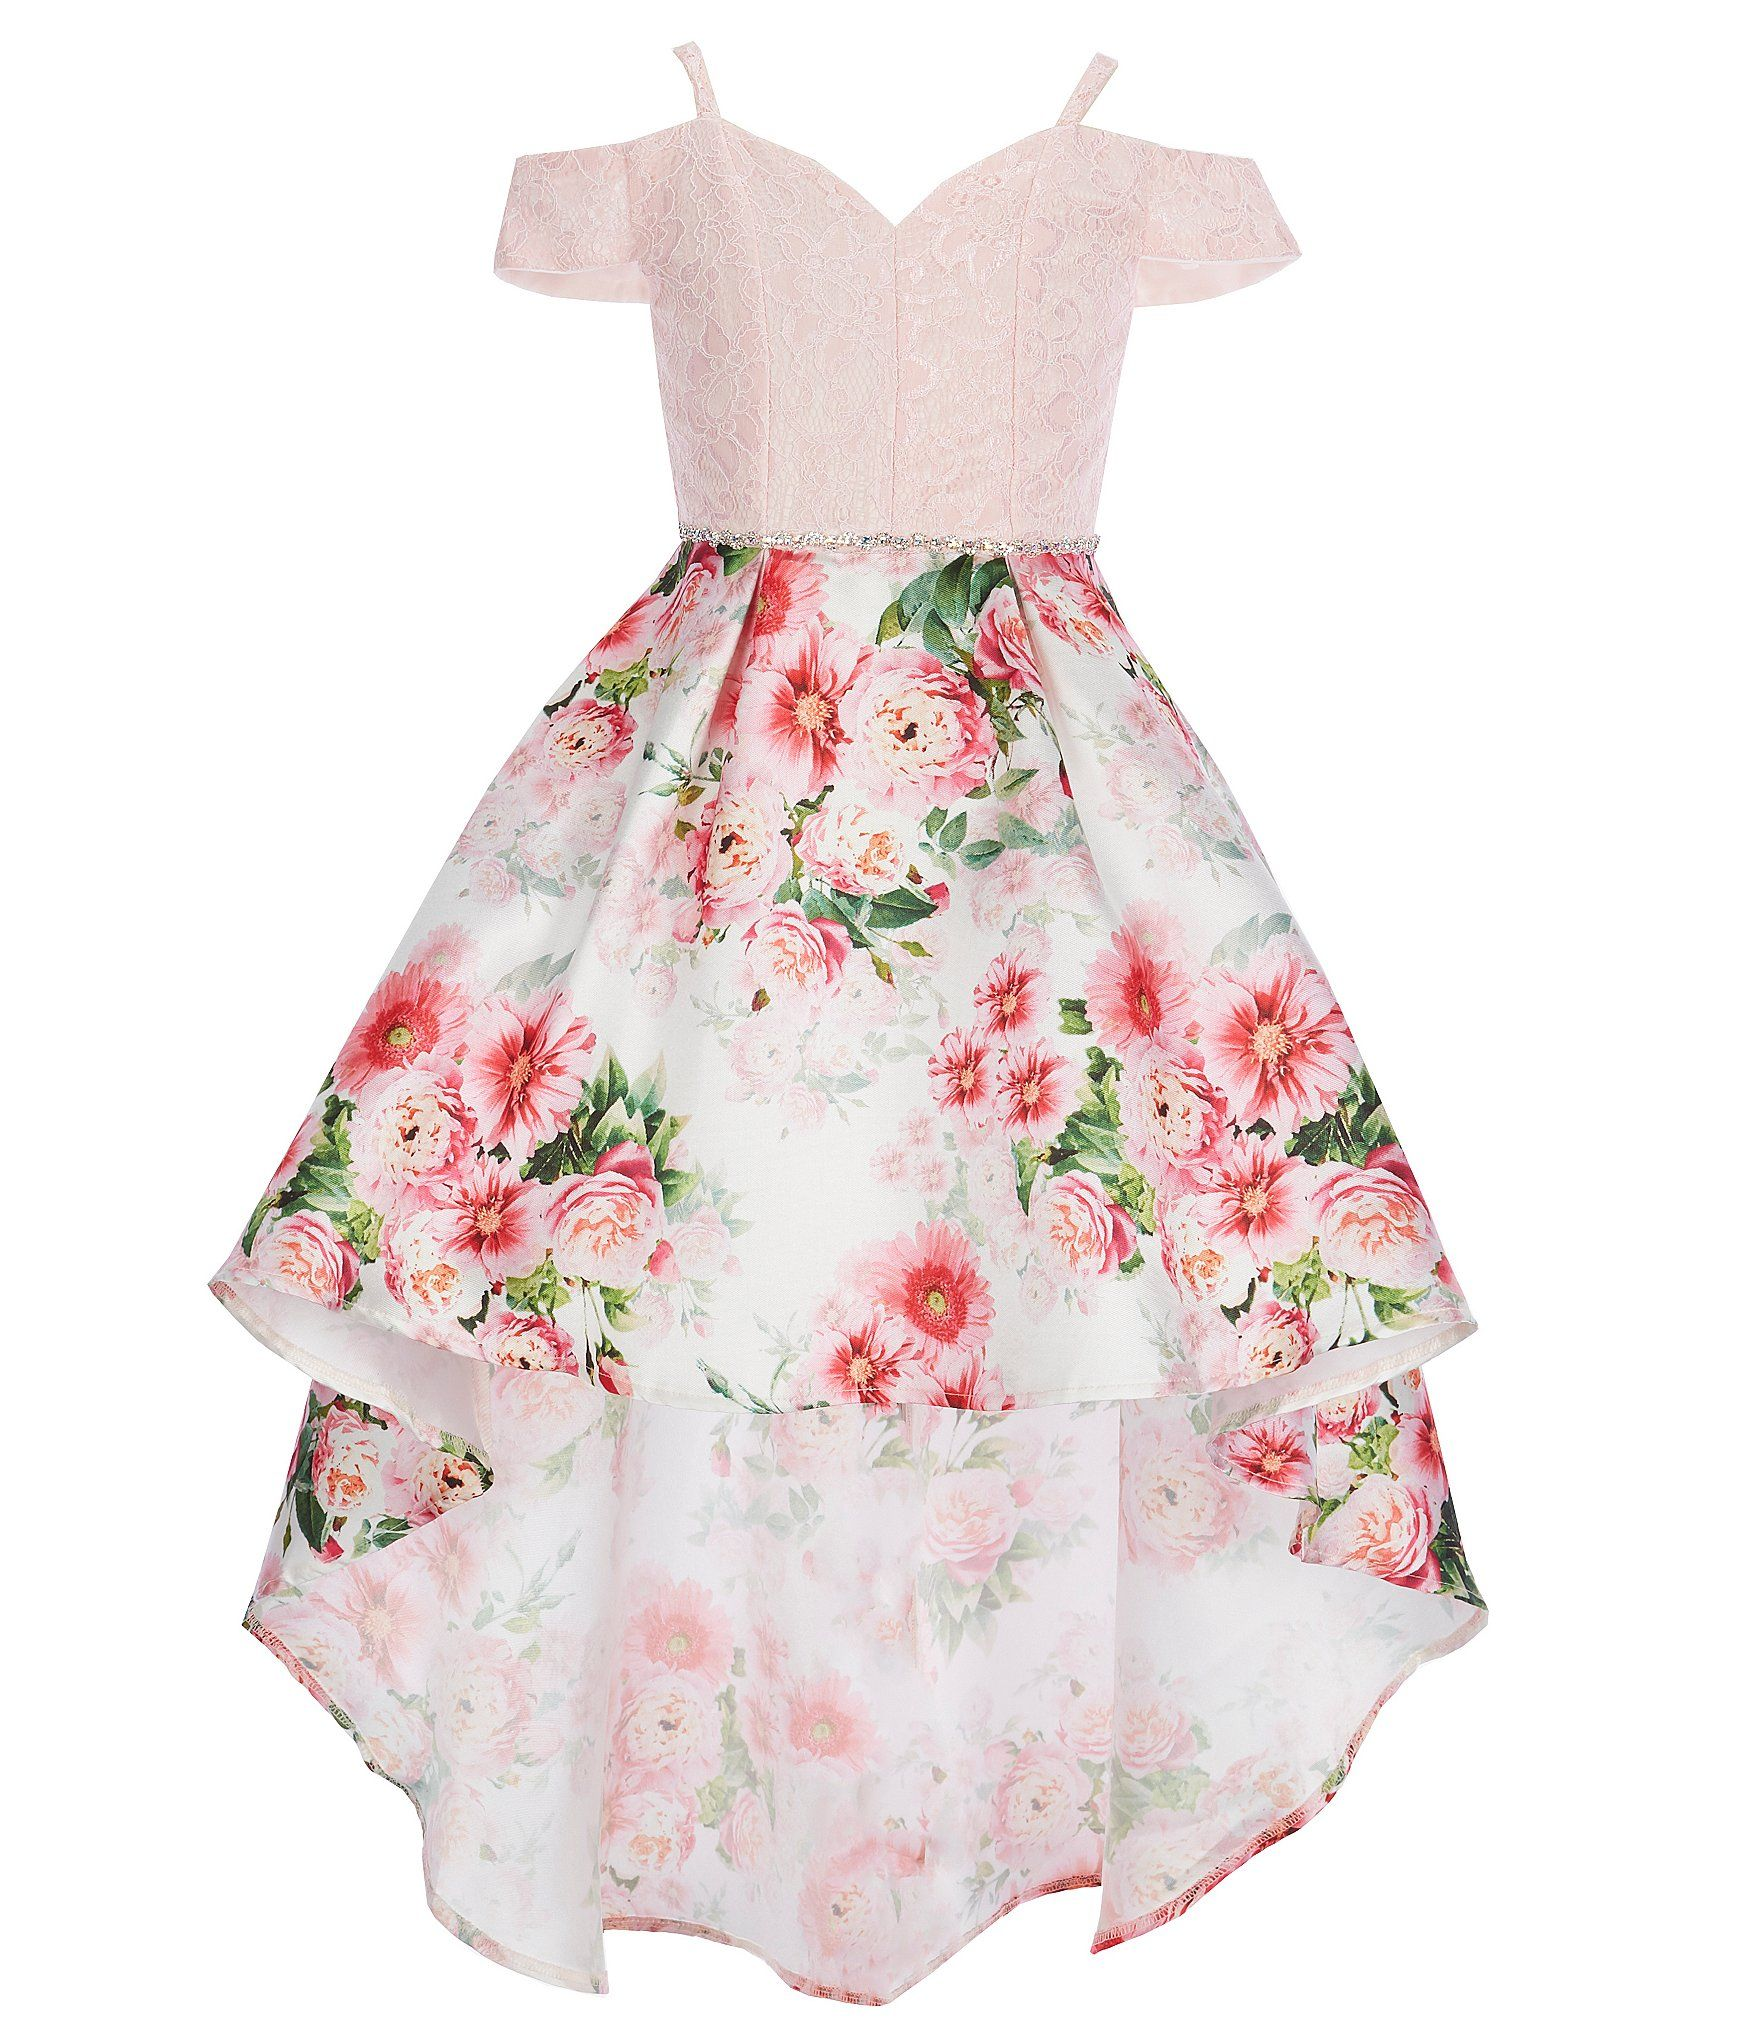 f06a133db430 Shop for Rare Editions Big Girls 7-16 Solid/Floral Extreme Hi-Low Dress at  Dillards.com. Visit Dillards.com to find clothing, accessories, shoes, ...